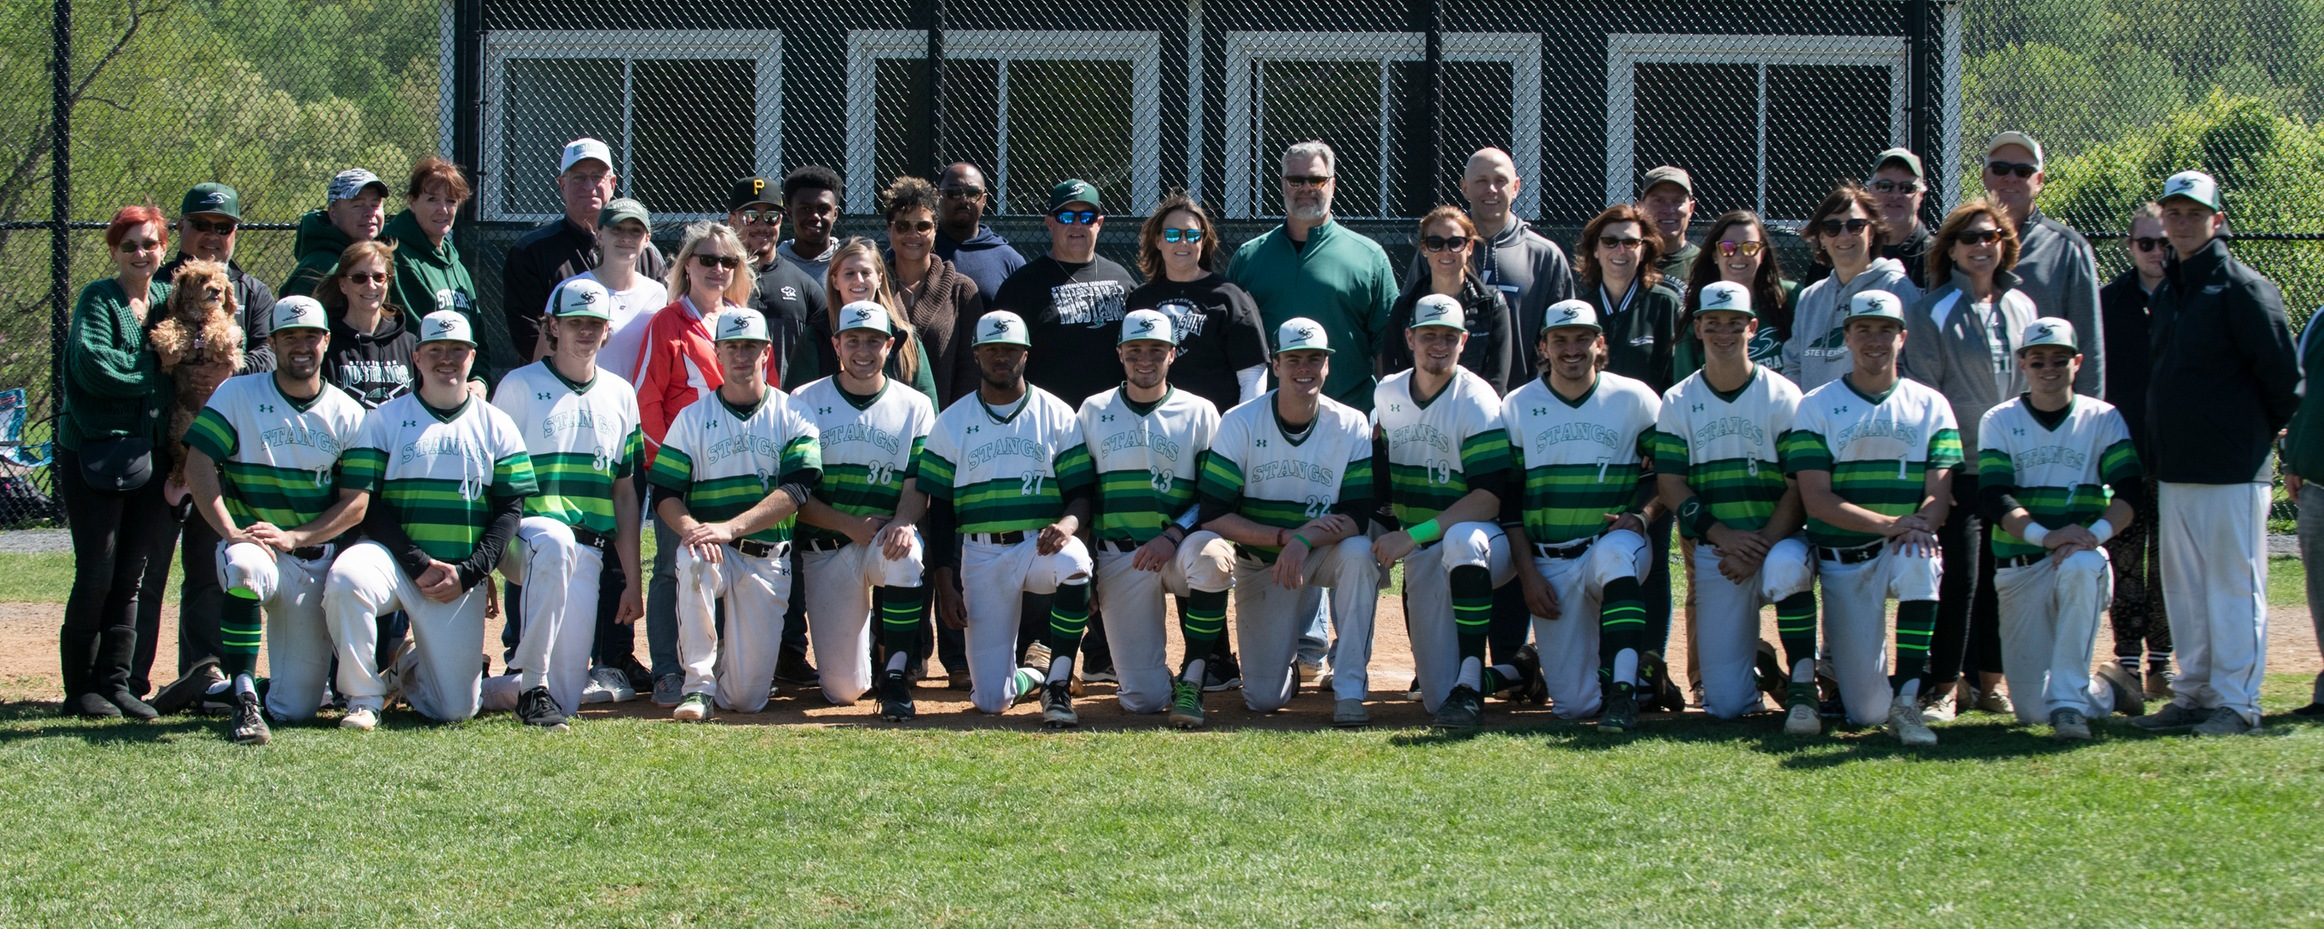 Mustangs Honor Seniors, Keep Postseason Hopes Alive With DH Sweep Of LVC